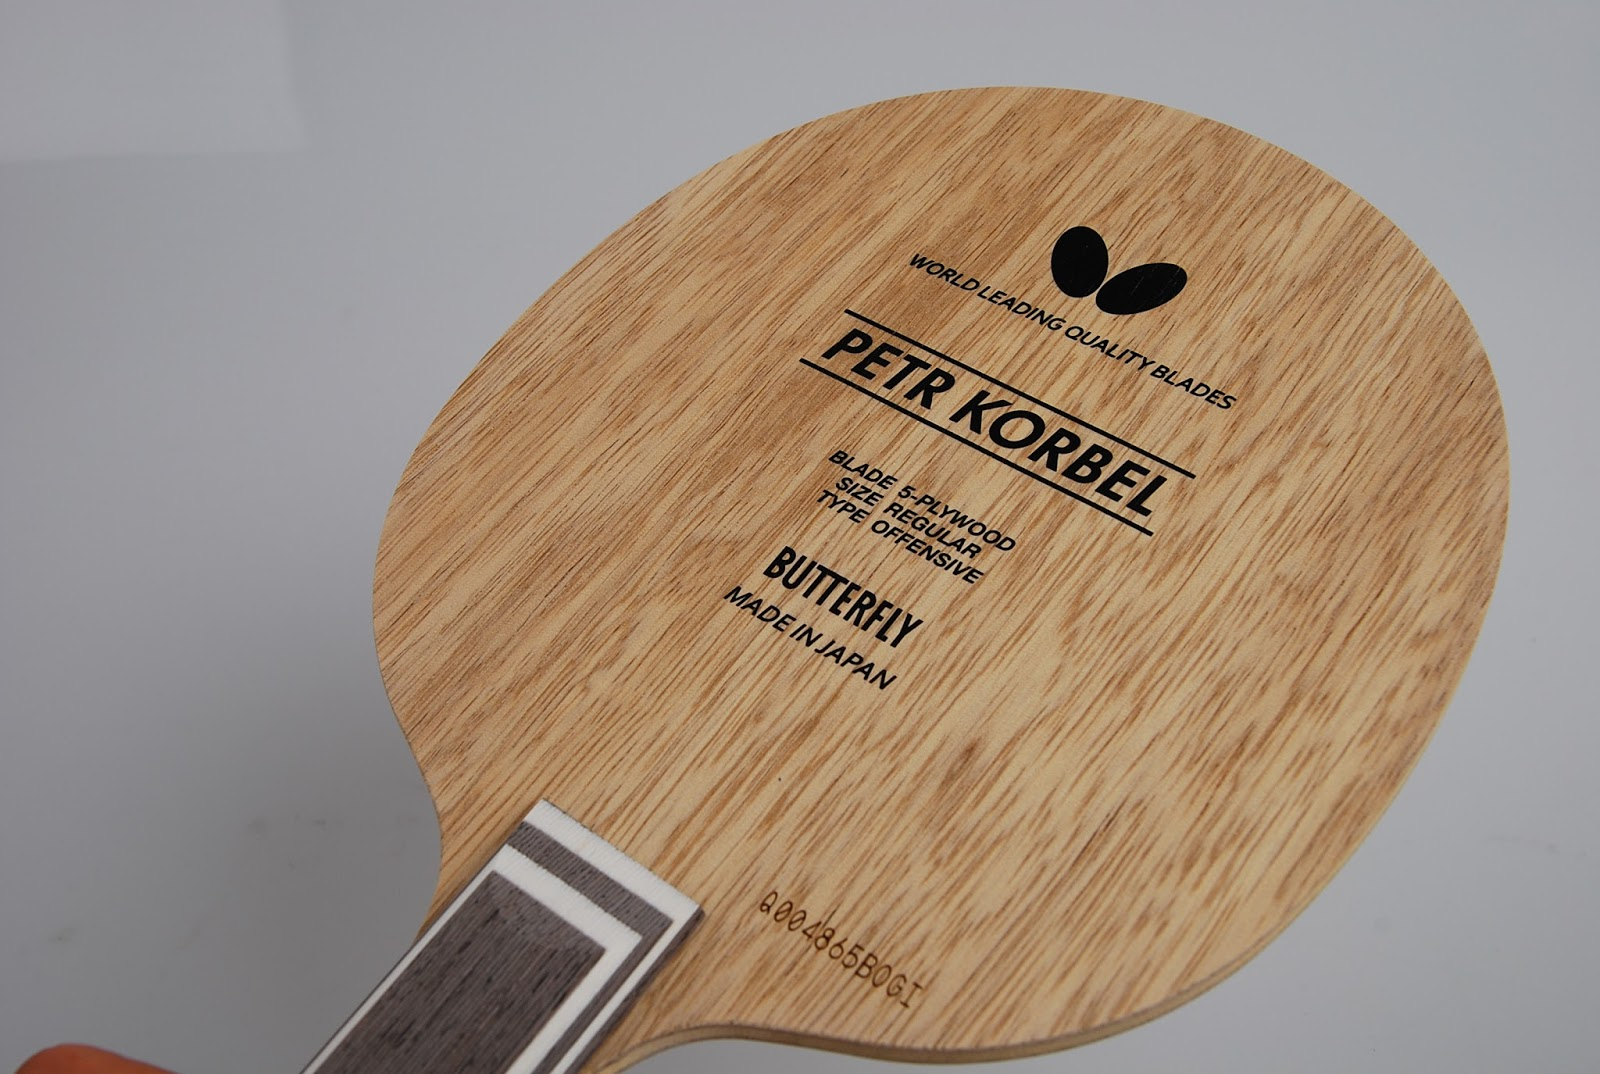 TabletennisIN  NEW DESIGN OF PETR KORBEL e5b0076e959b8